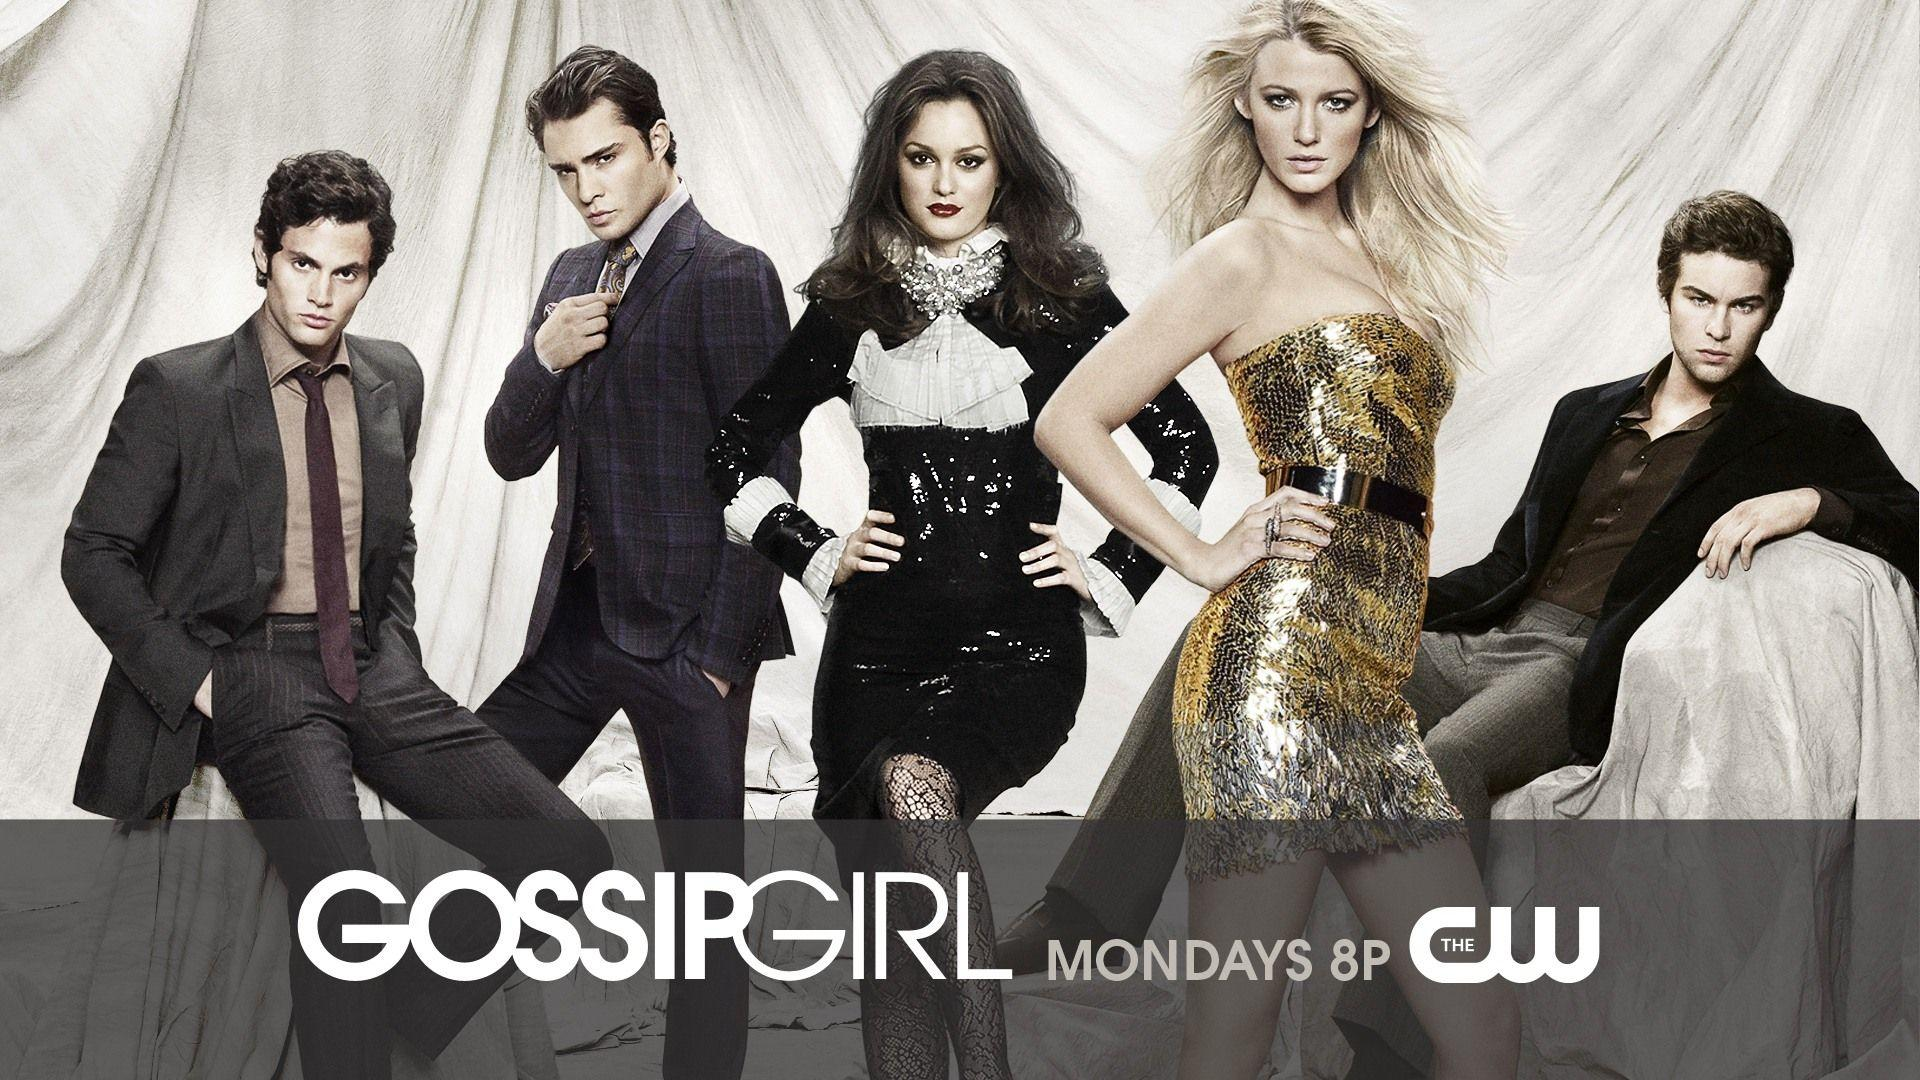 Gossip Girl HD wallpapers #19 - 1920x1080 Wallpaper Download ...